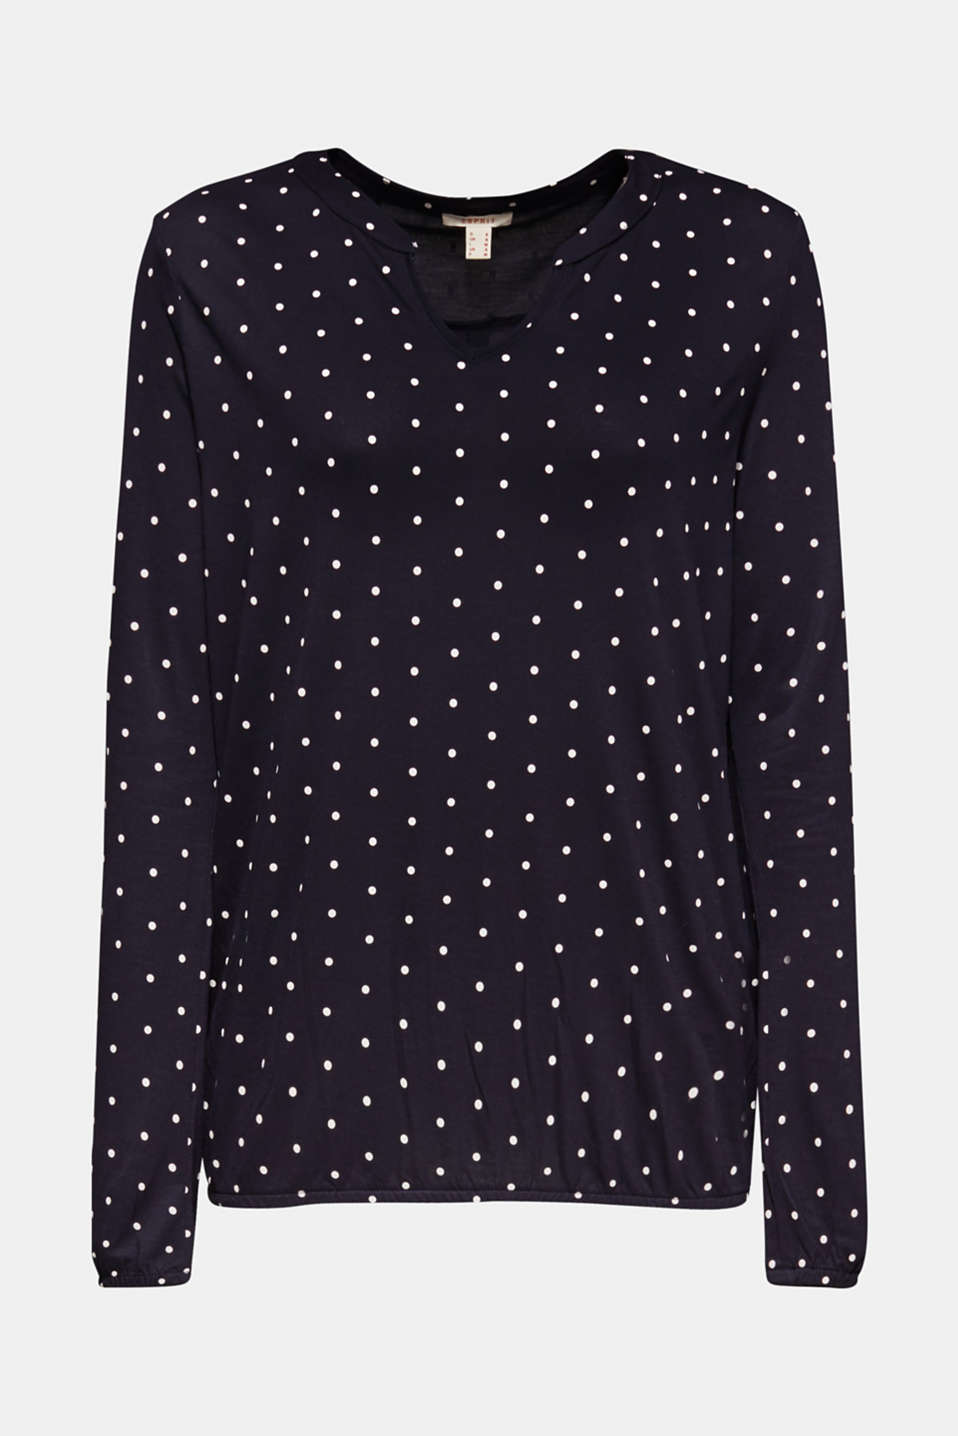 Polka dot top with cloth details, NAVY, detail image number 7